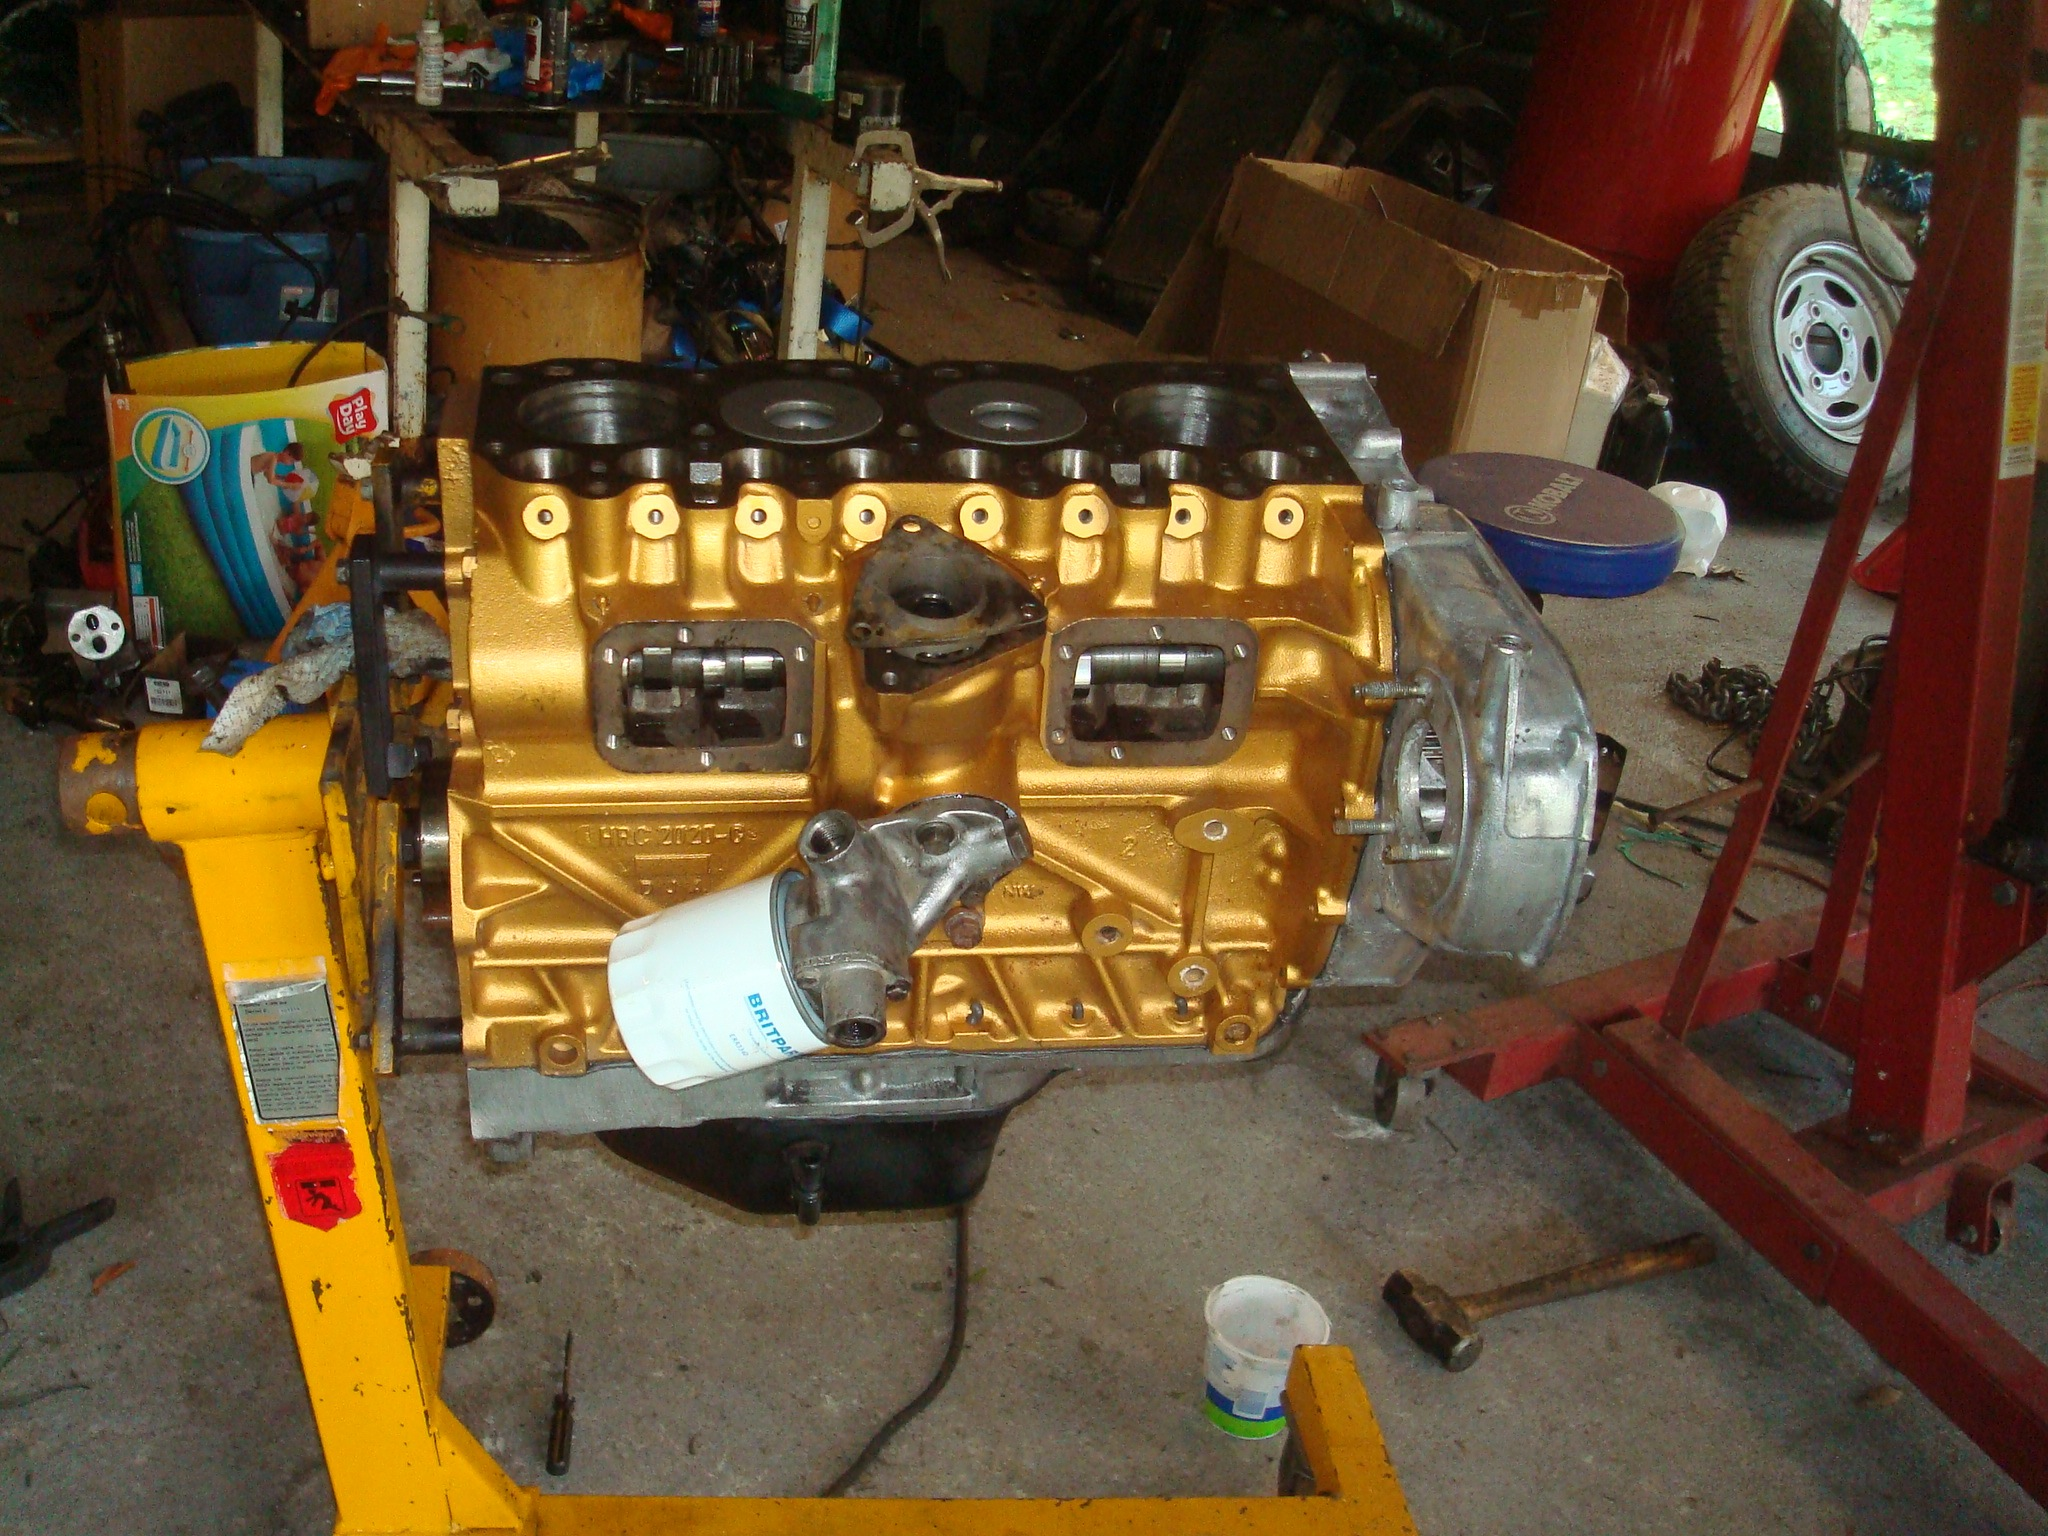 Tdi Turbo Diesel Land Rover engine conversion swap kits for